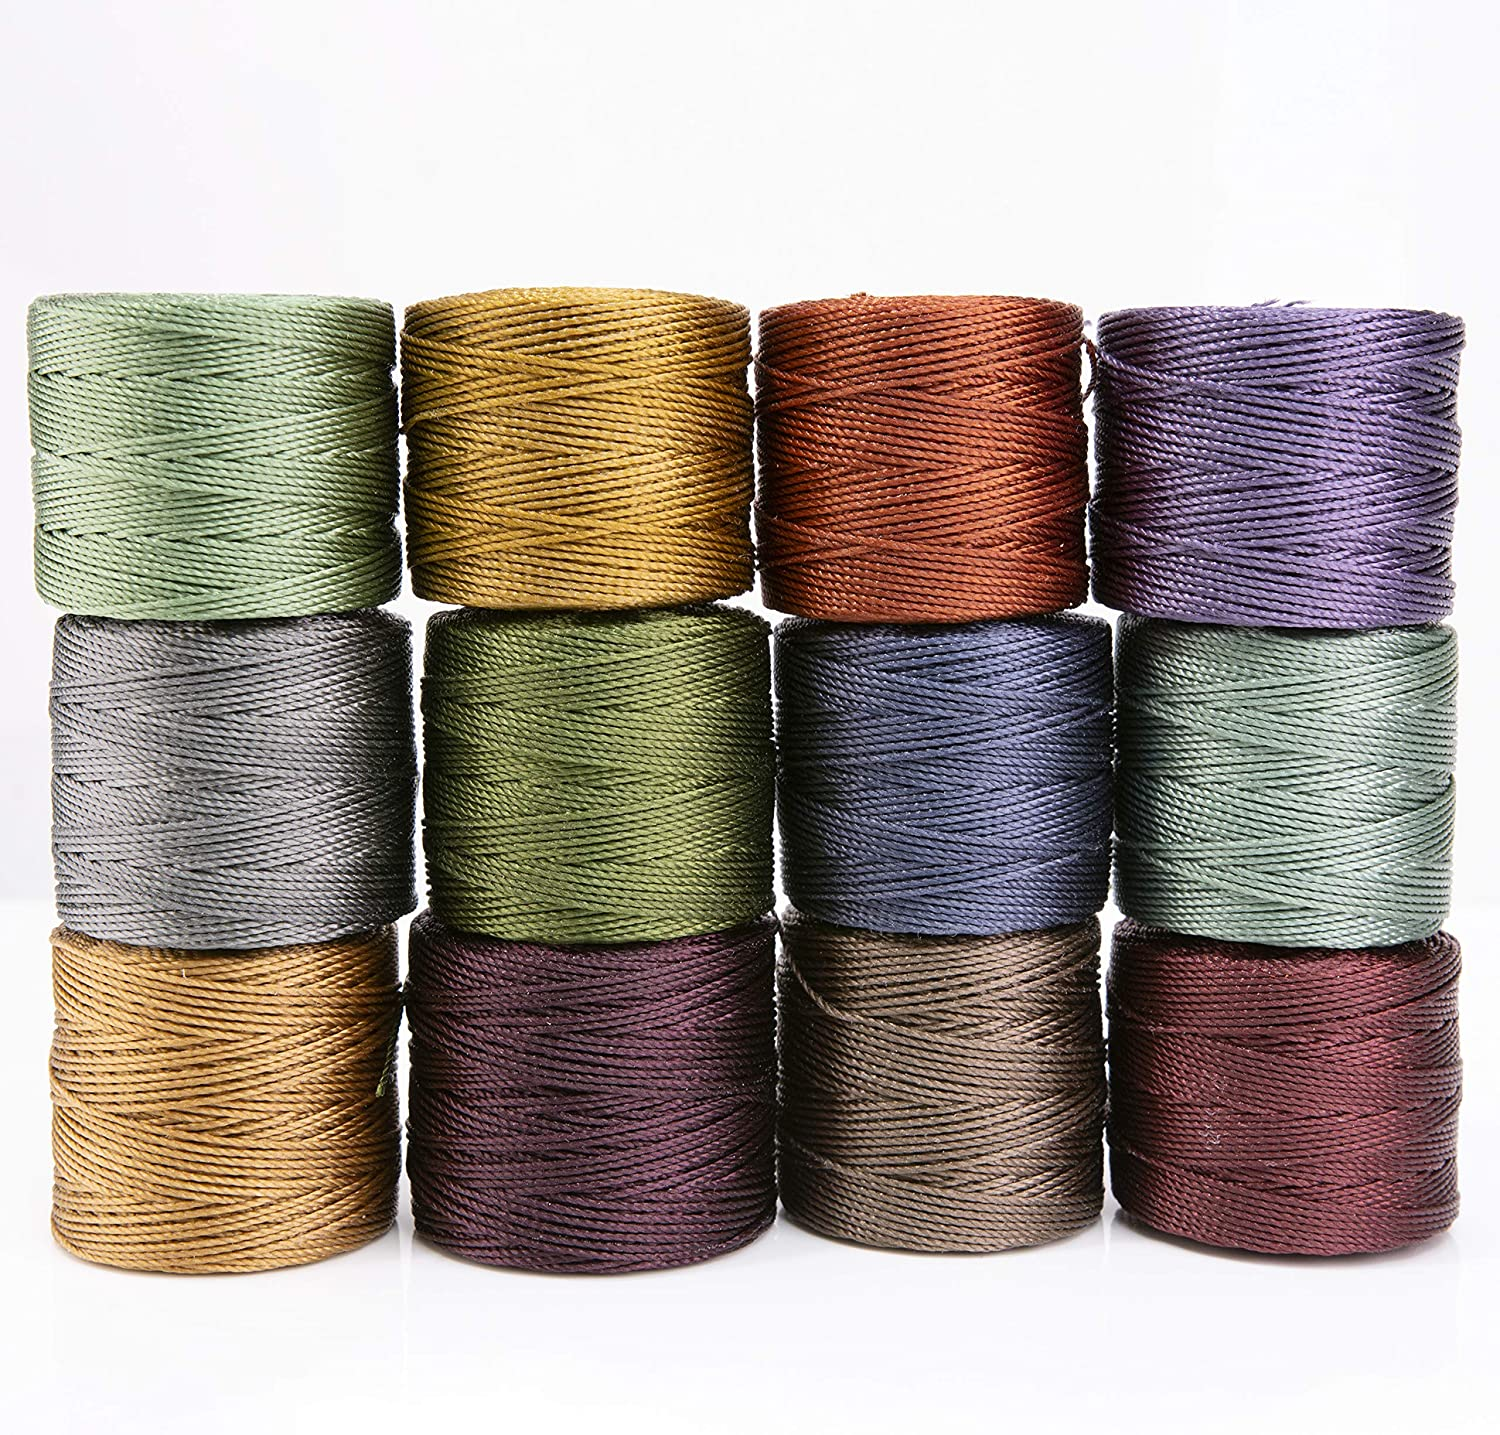 Beadsmith S-Lon Cord Multipack with 12 Spools (Forest Mix)